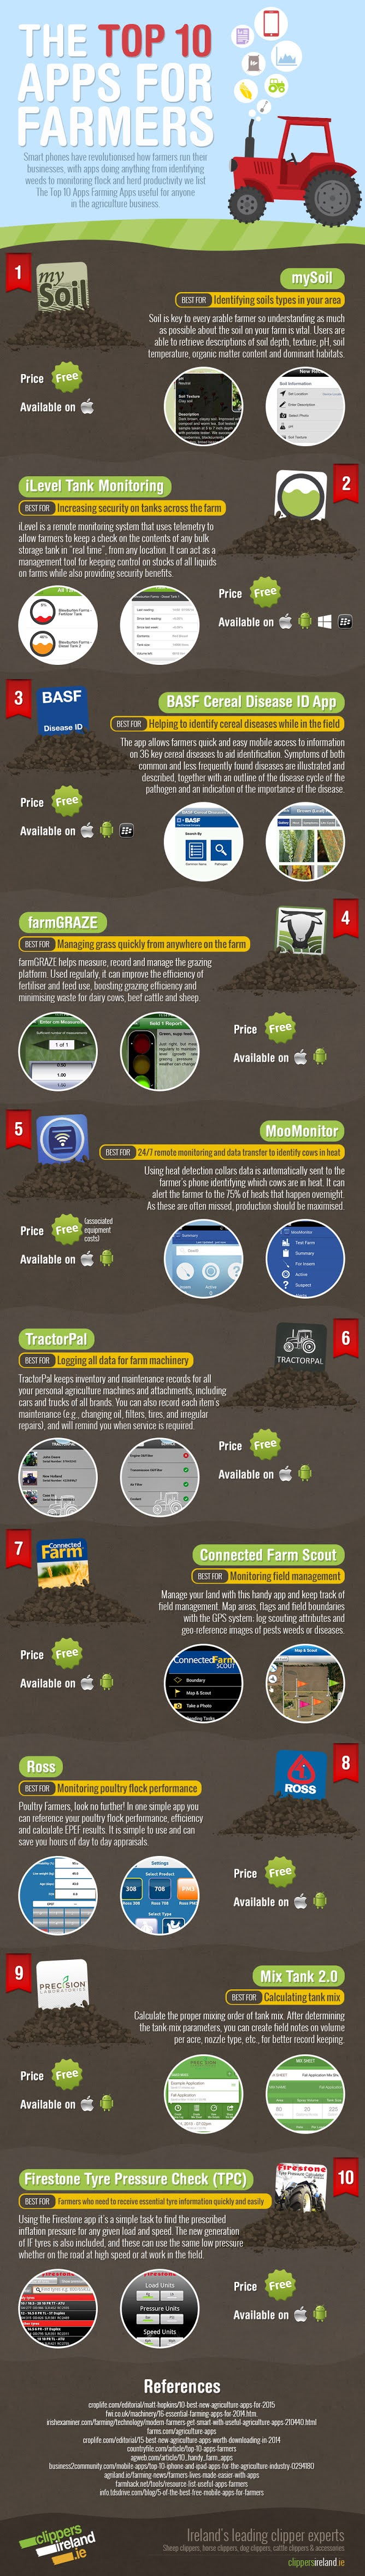 The Top 10 Apps For Farmers #infographic  #Apps For Farmers #Apps #Formers #Business #Farming Business